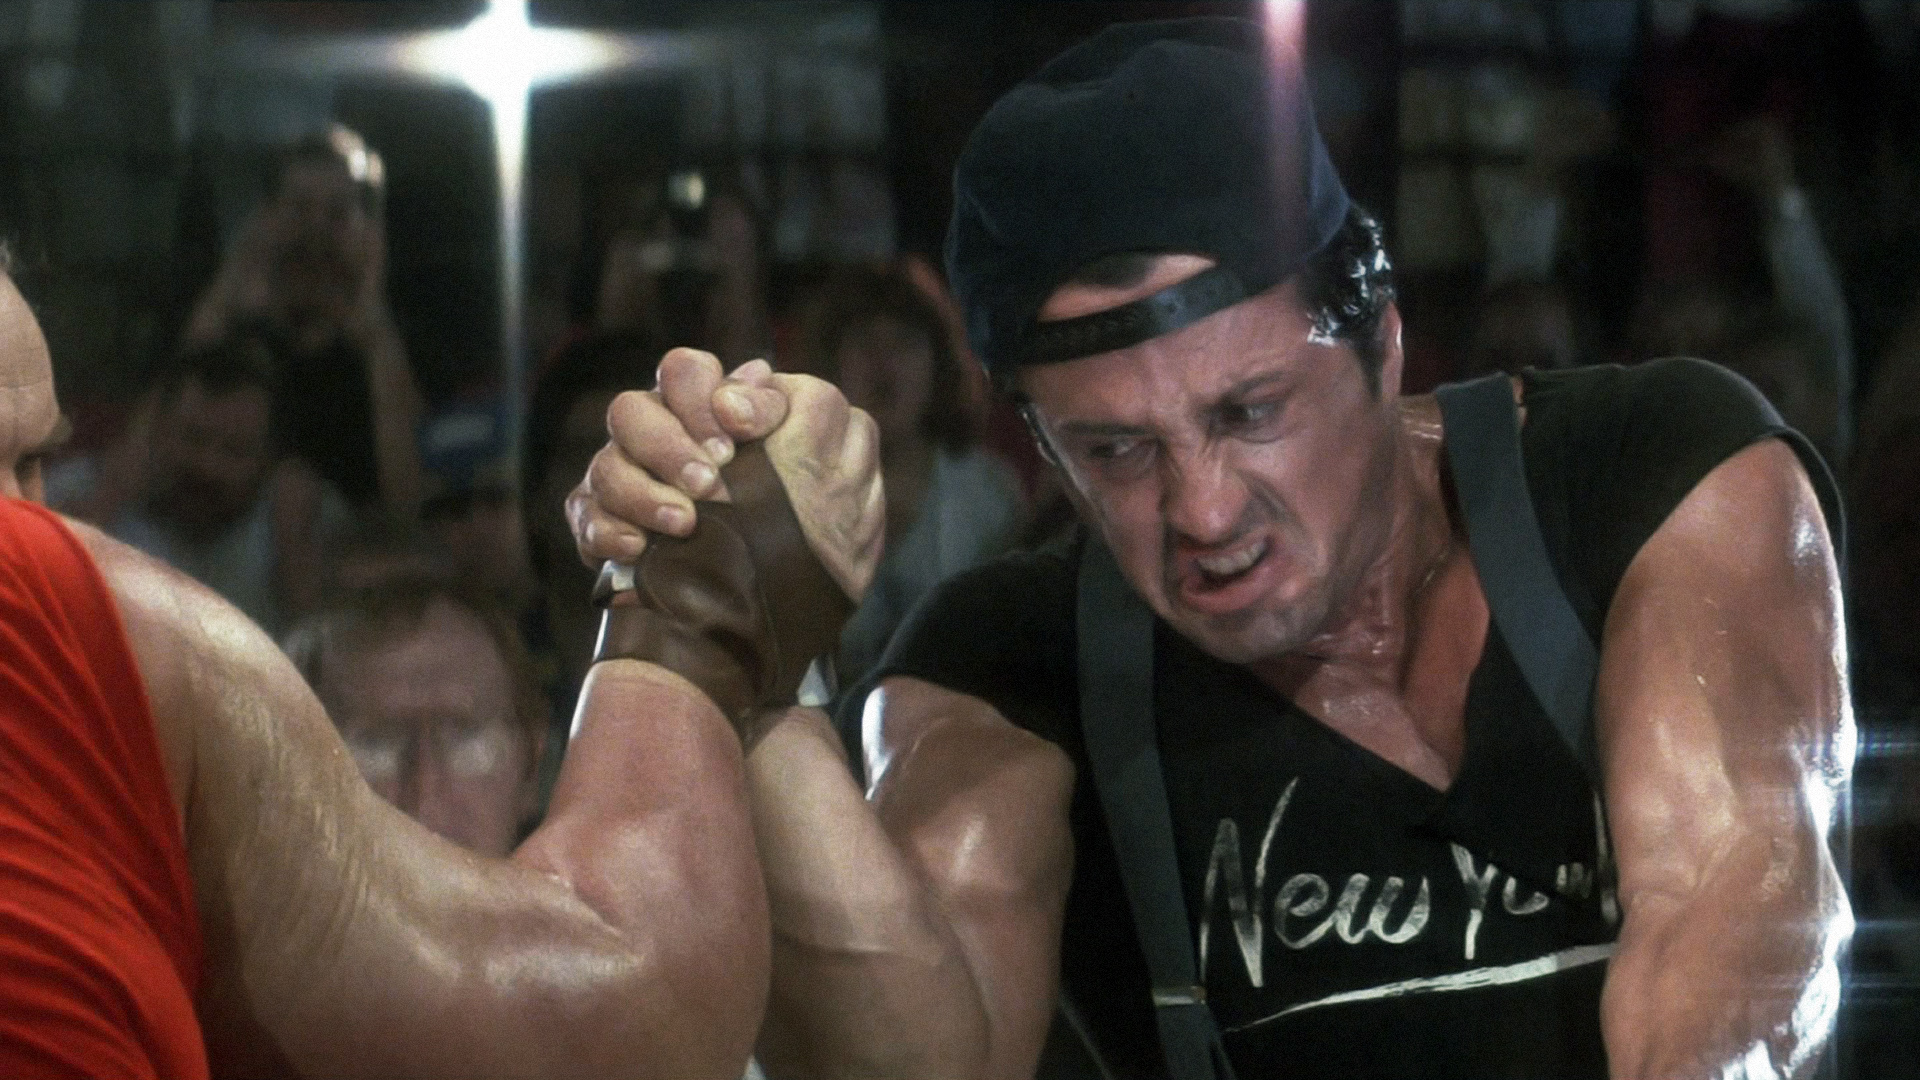 Sylvester Stallone in Over the Top at a climactic arm wrestling scene in front of a big crowd for the championship